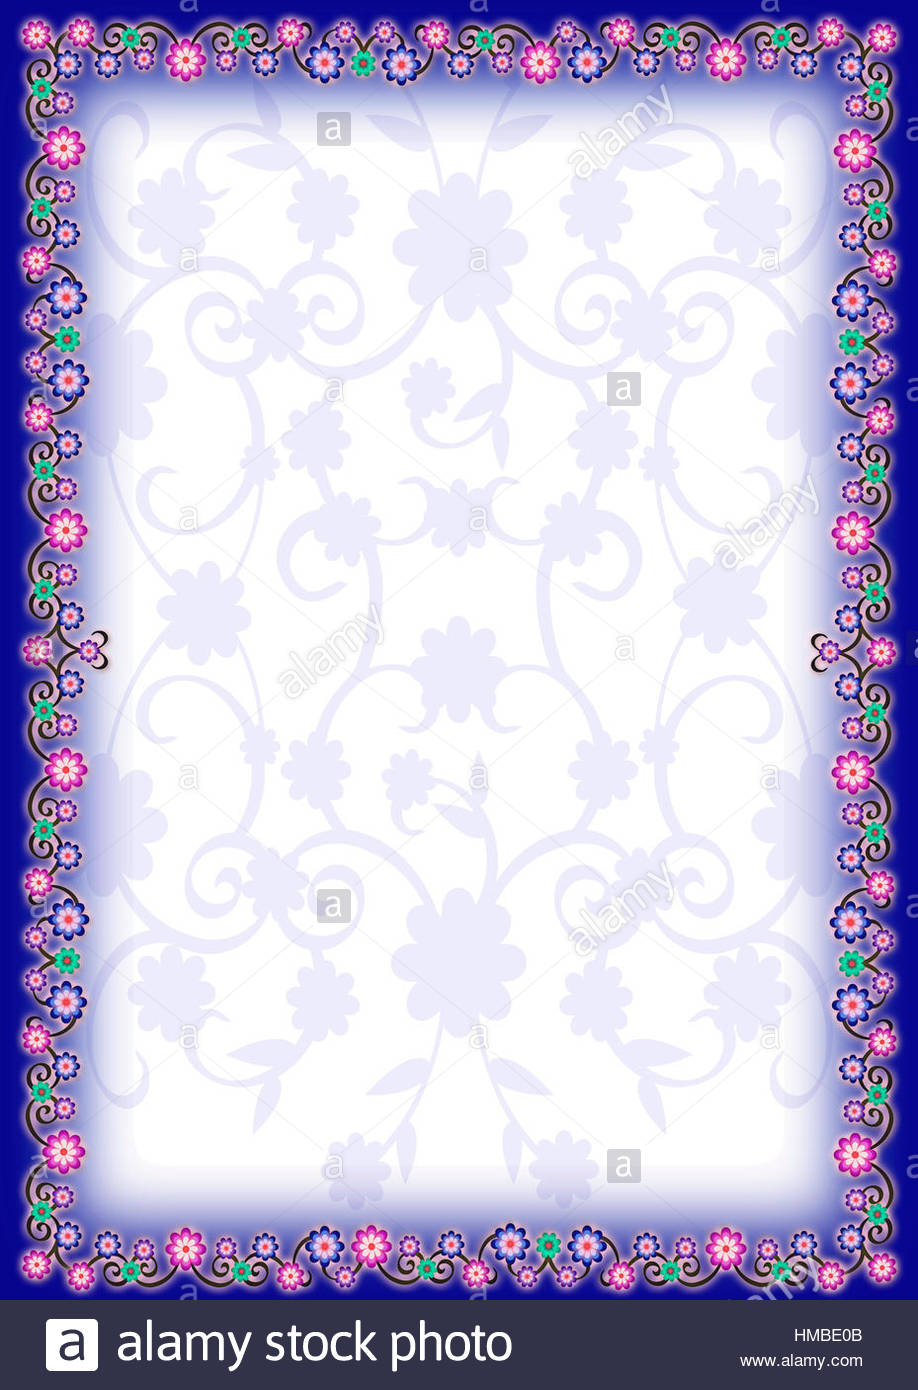 Blue Floral Portrait Frame With Lighter Blue Floral Same Pattern As